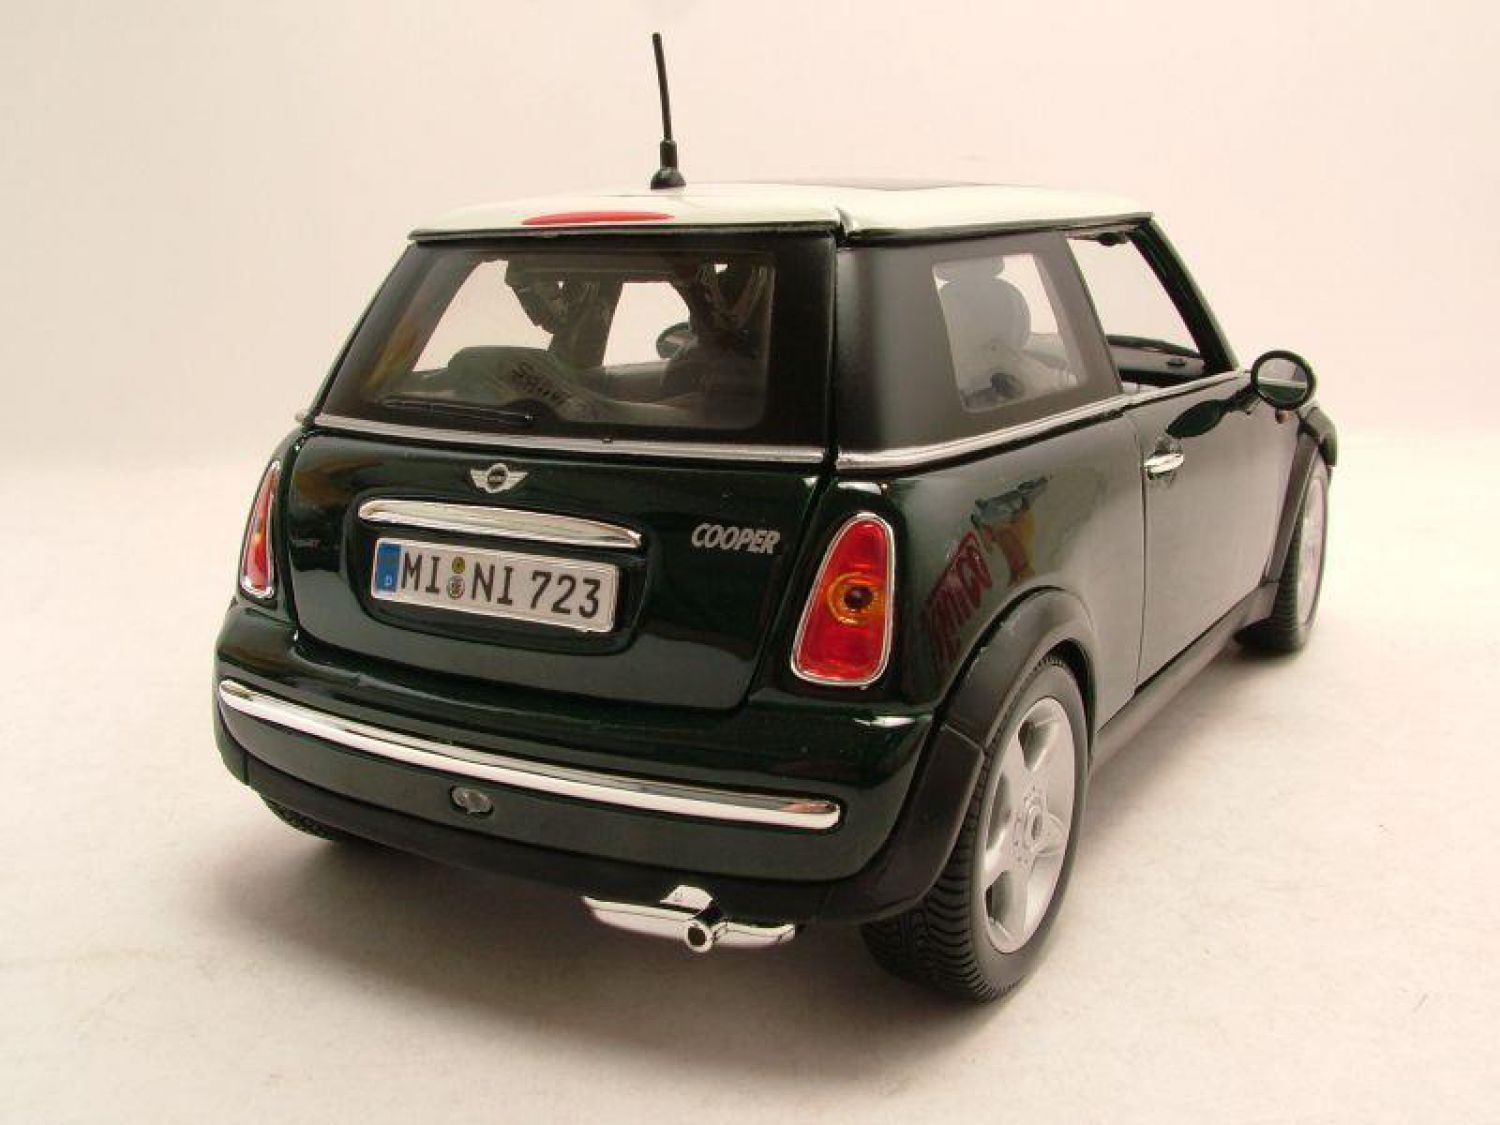 Bmw mini cooper sun roof darkgreen metallic model car for Sun motor cars bmw